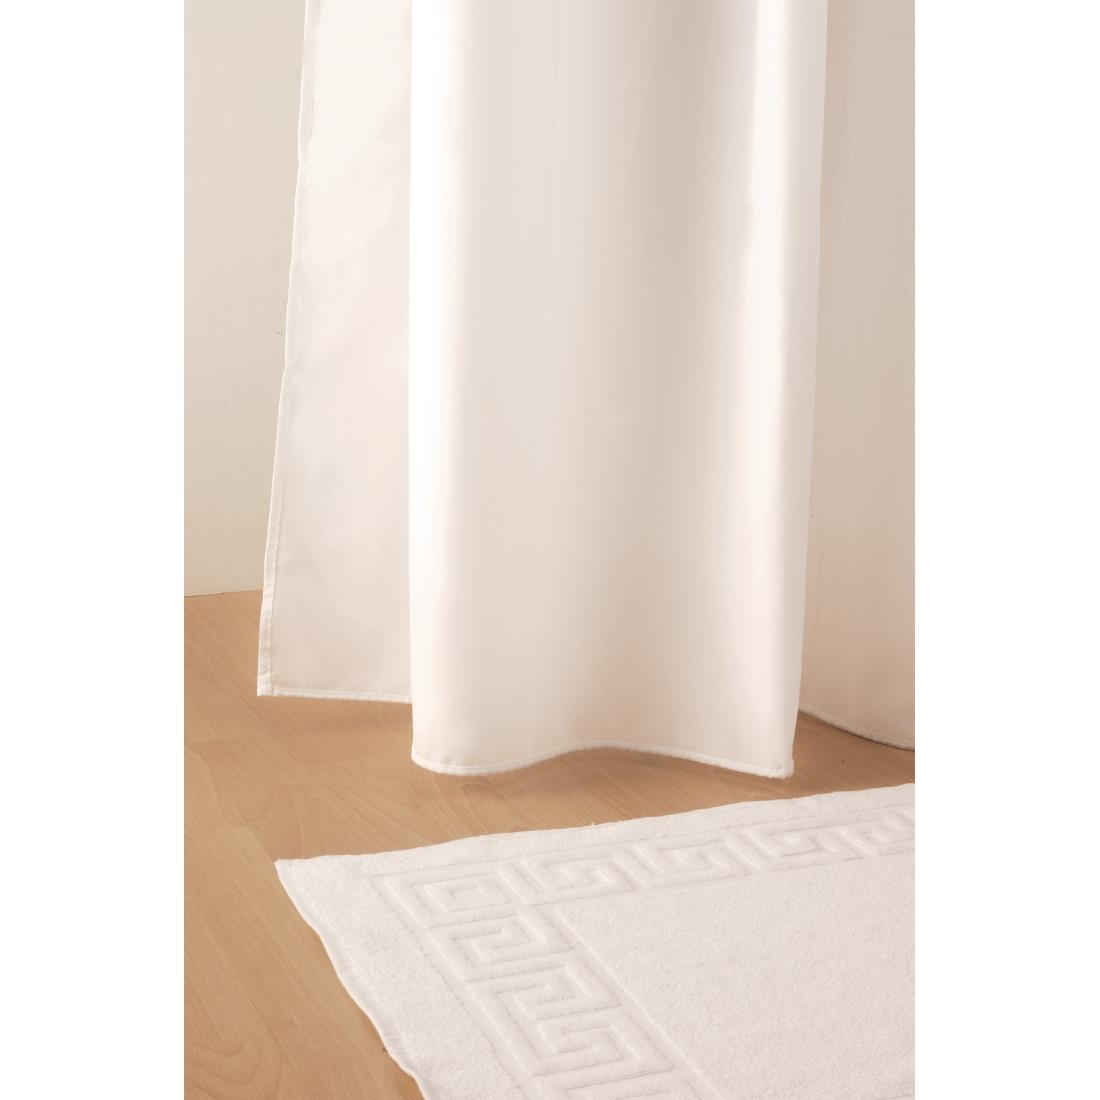 matelasse showercurtaian alley curtain peacock white vienna products matelass shower curtains